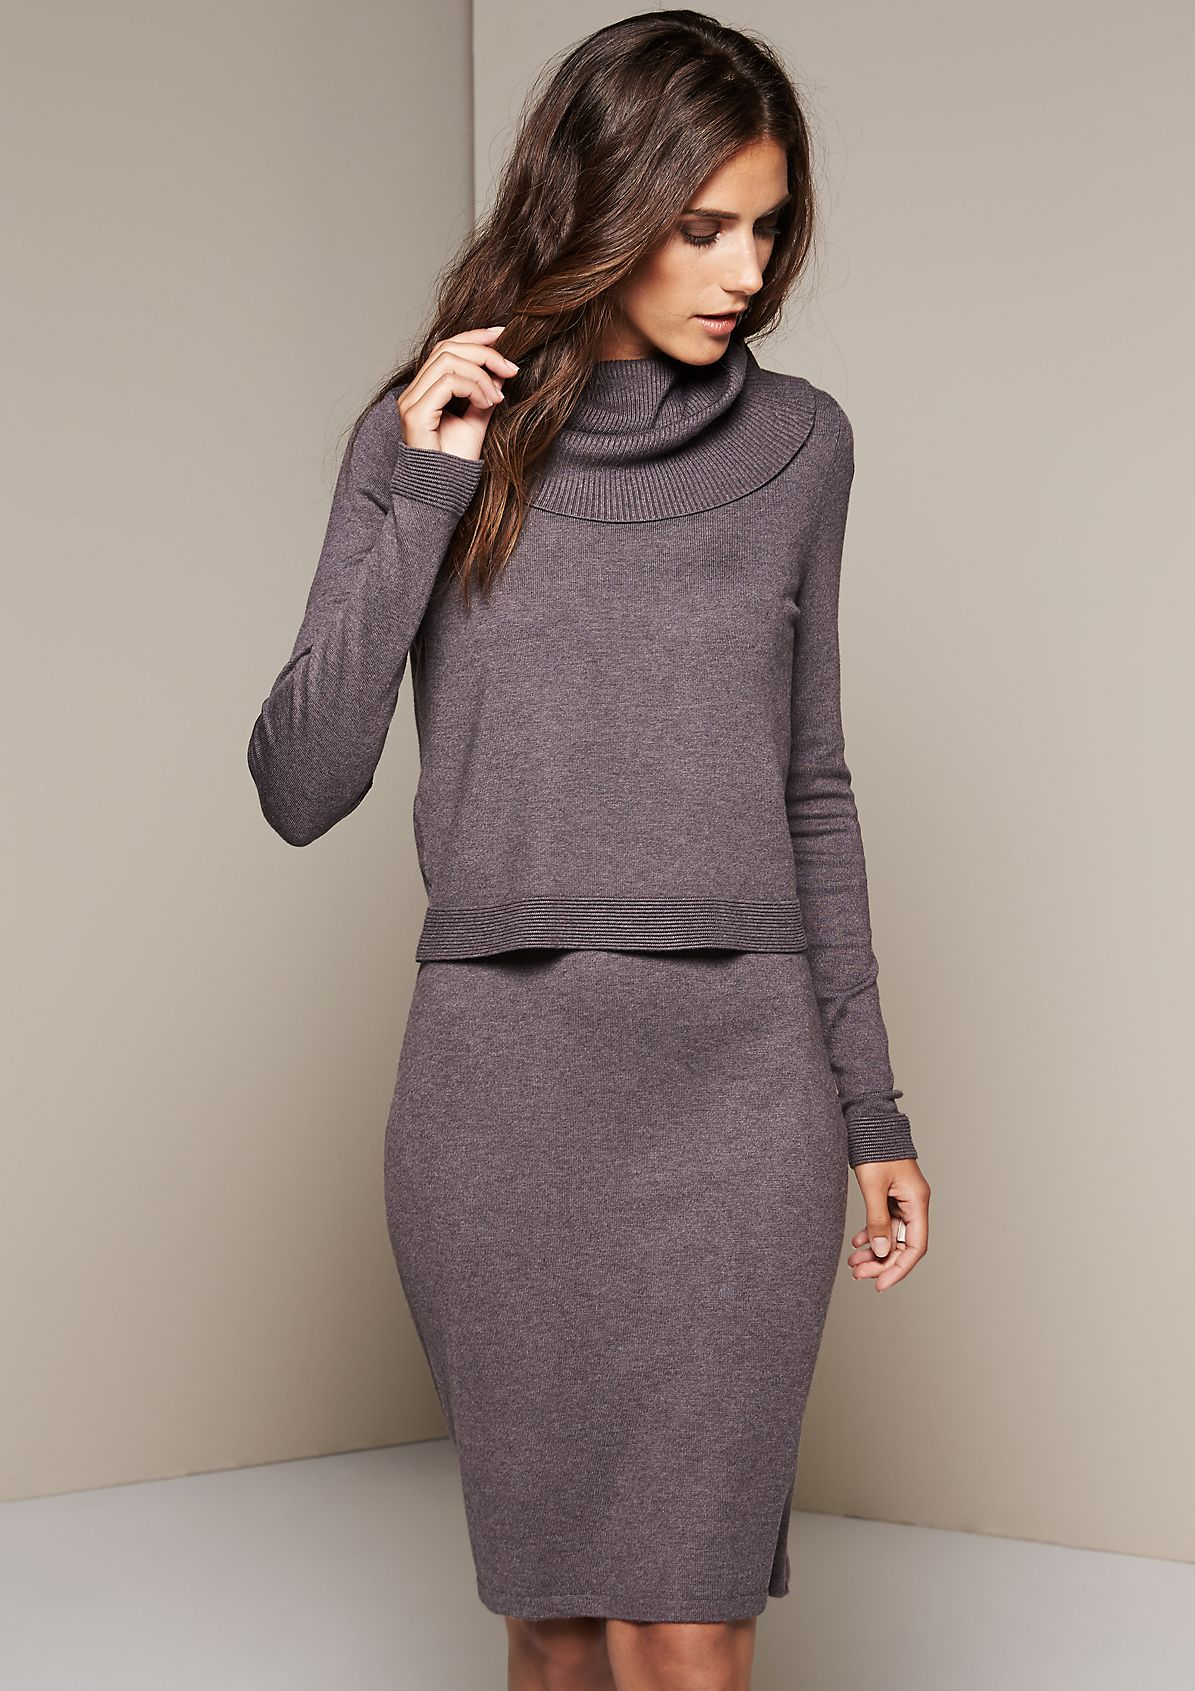 Warm knitted dress in a layered look from s.Oliver